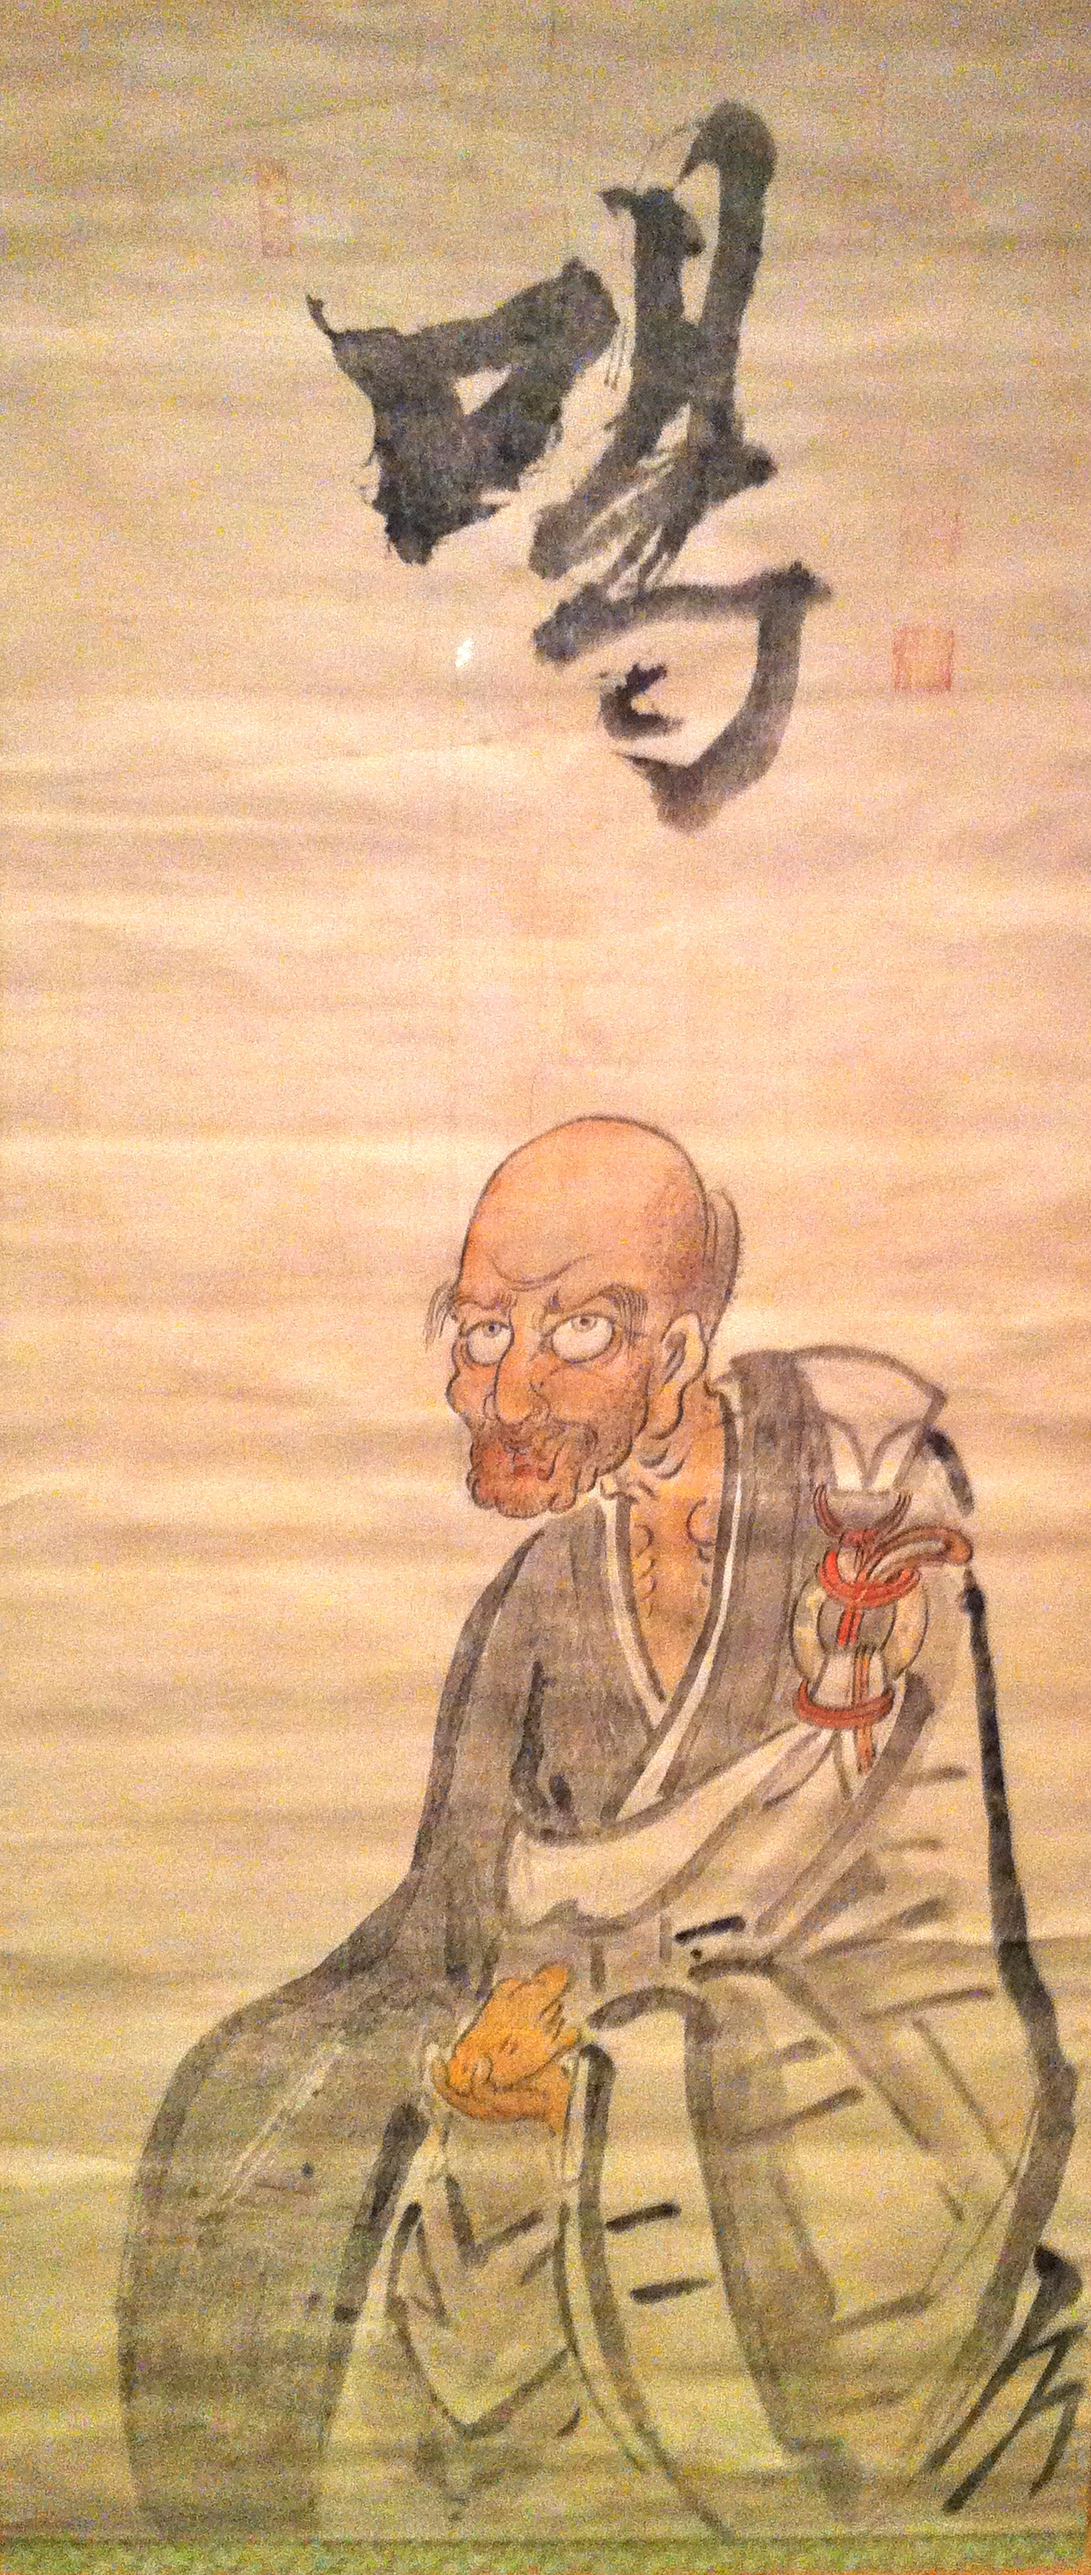 Linji | The Existential Buddhist